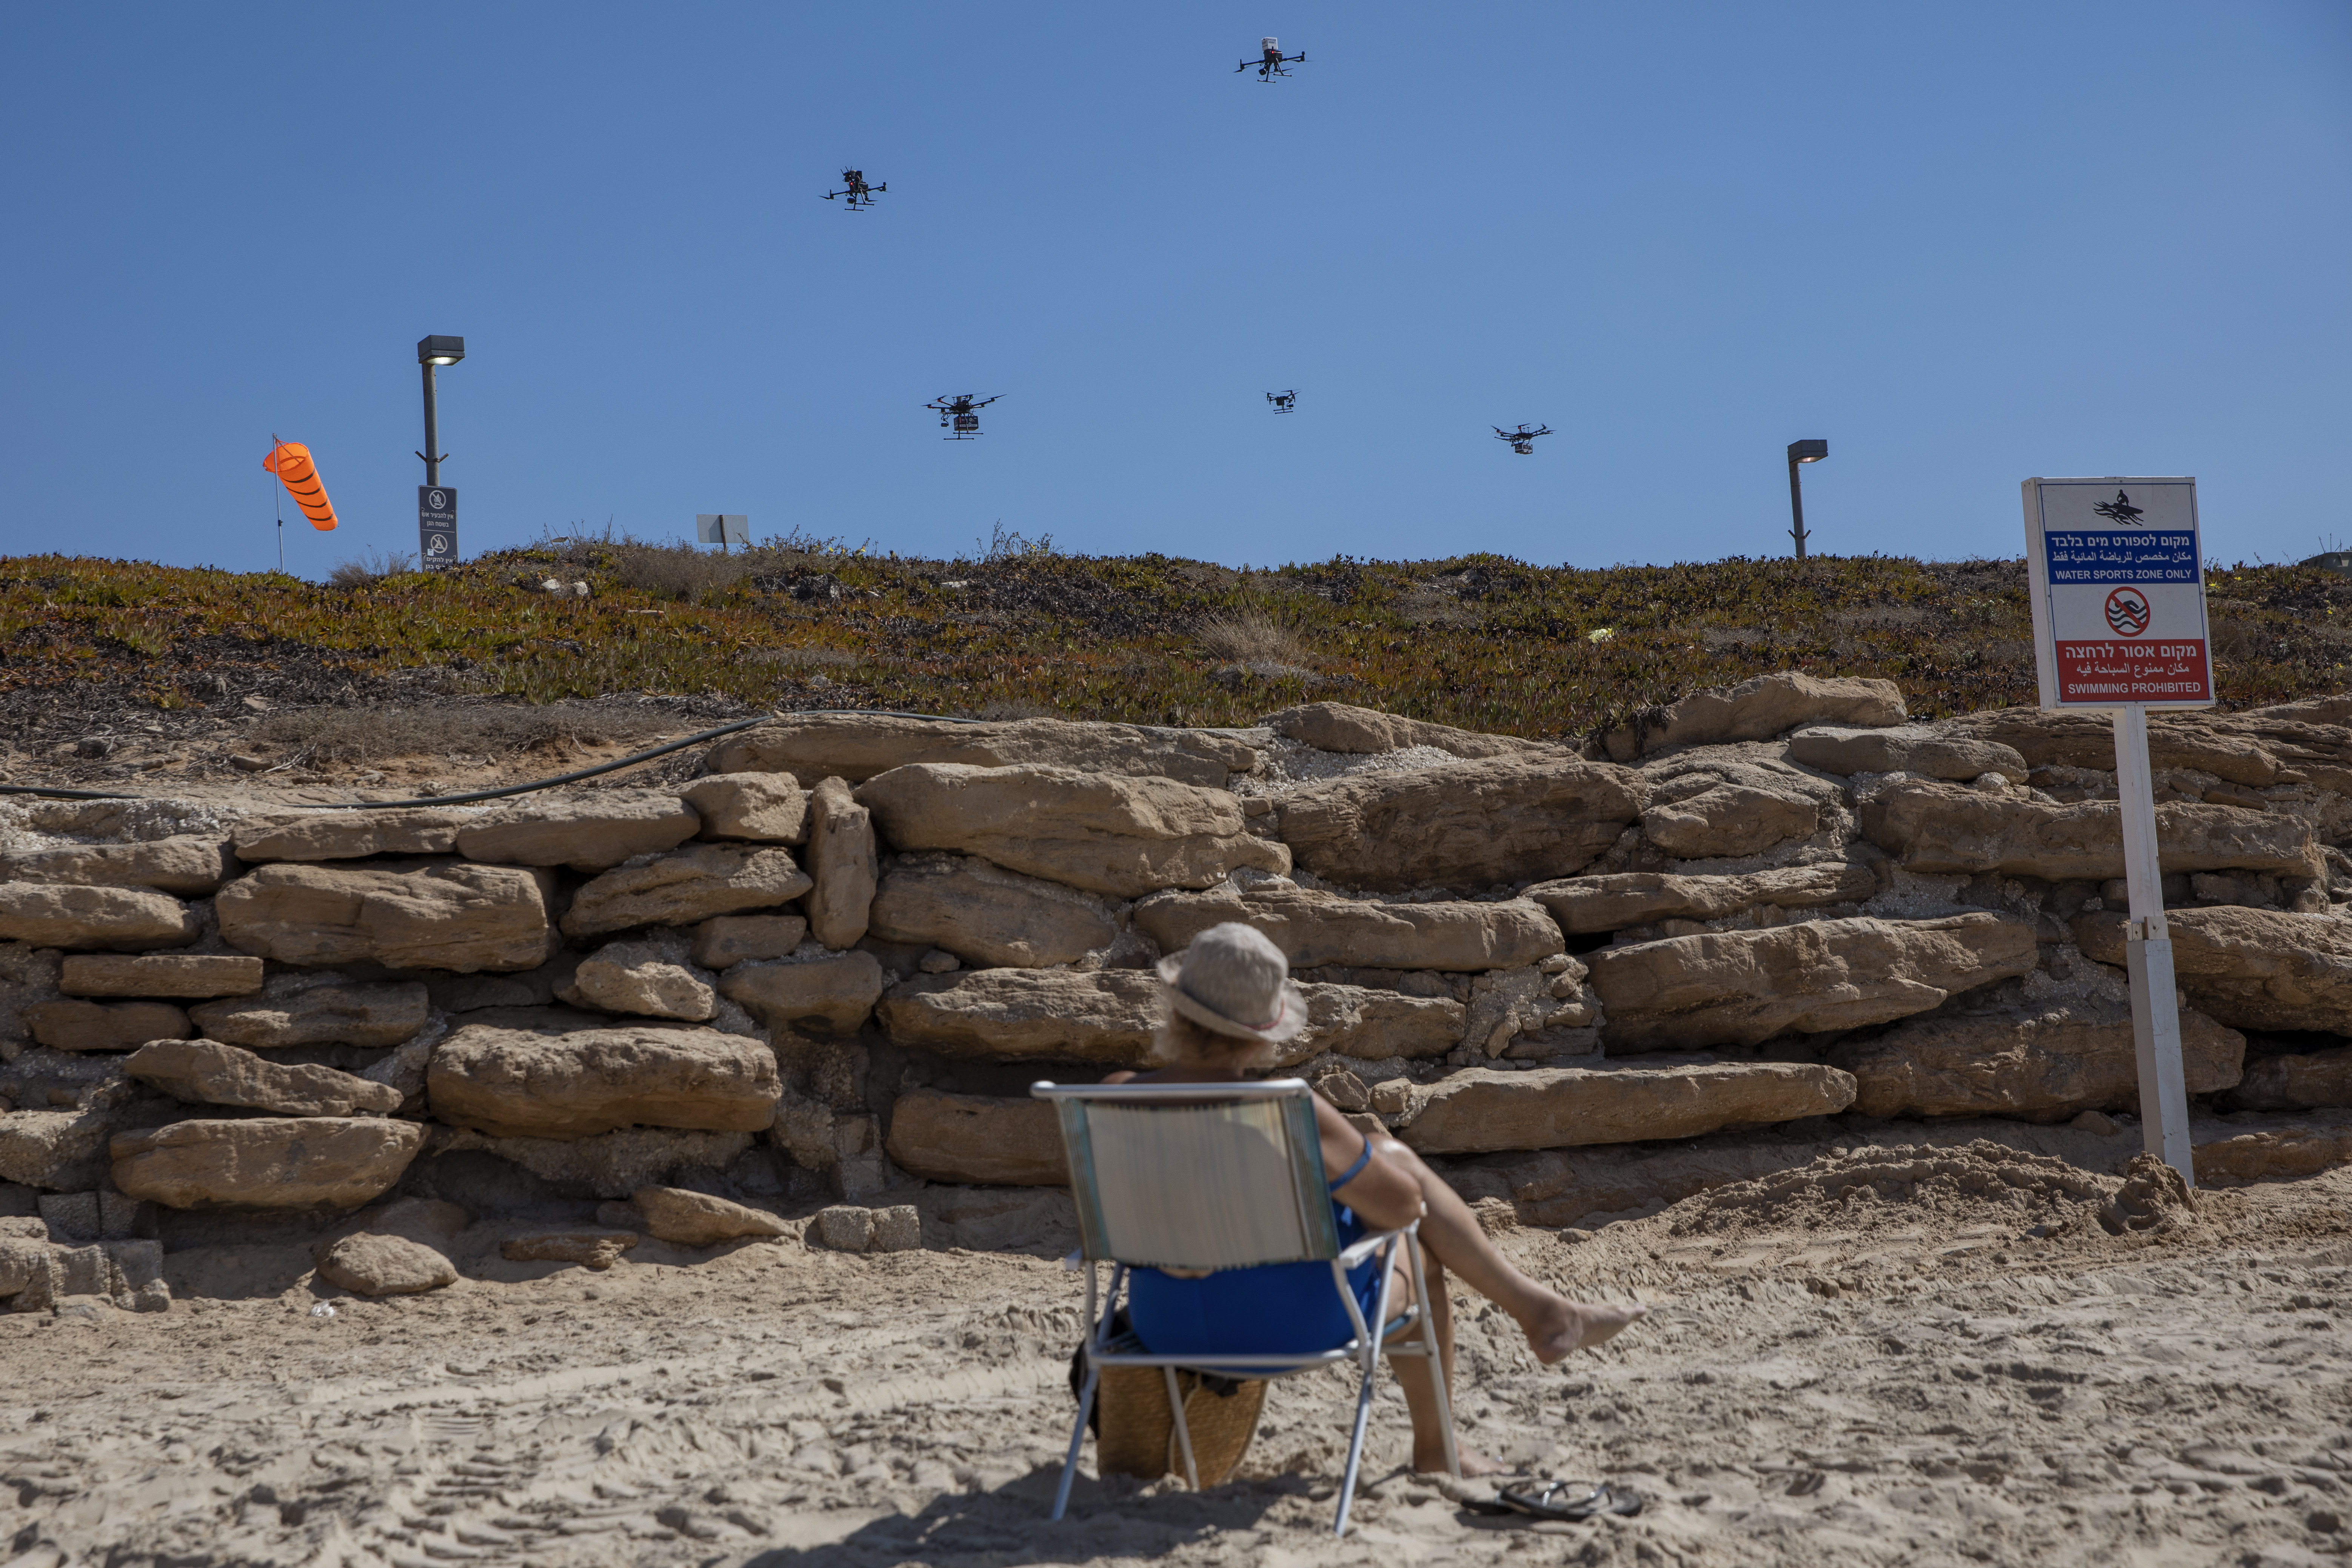 A woman looks at drones carrying goods as part of the National Drone Initiative demonstration for journalists over Tel Aviv, Israel, Monday, Oct. 11, 2021.